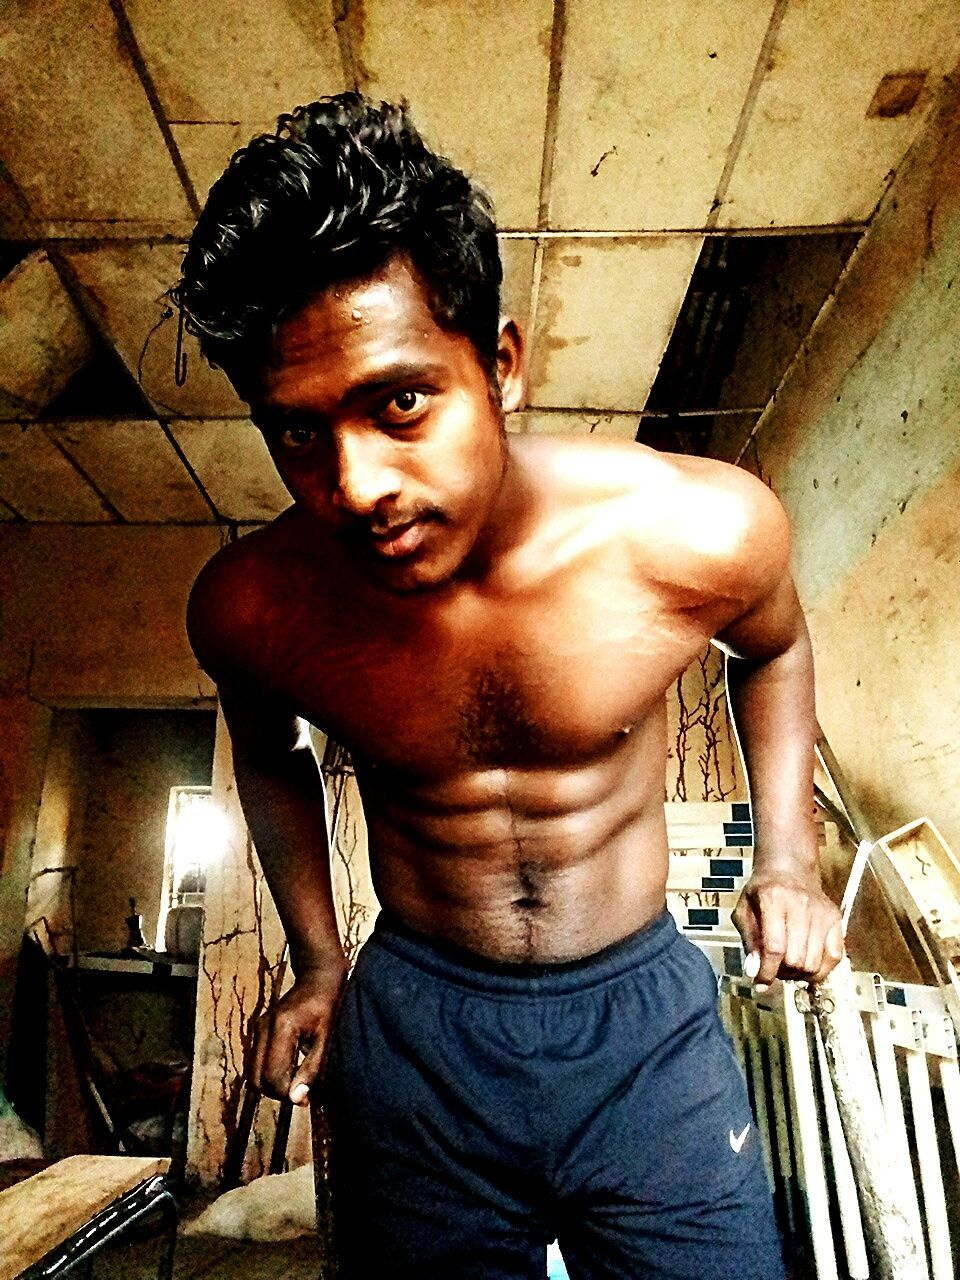 looking at camera, one person, portrait, shirtless, real people, lifestyles, front view, standing, strength, young adult, men, indoors, basement, muscular build, day, one man only, people